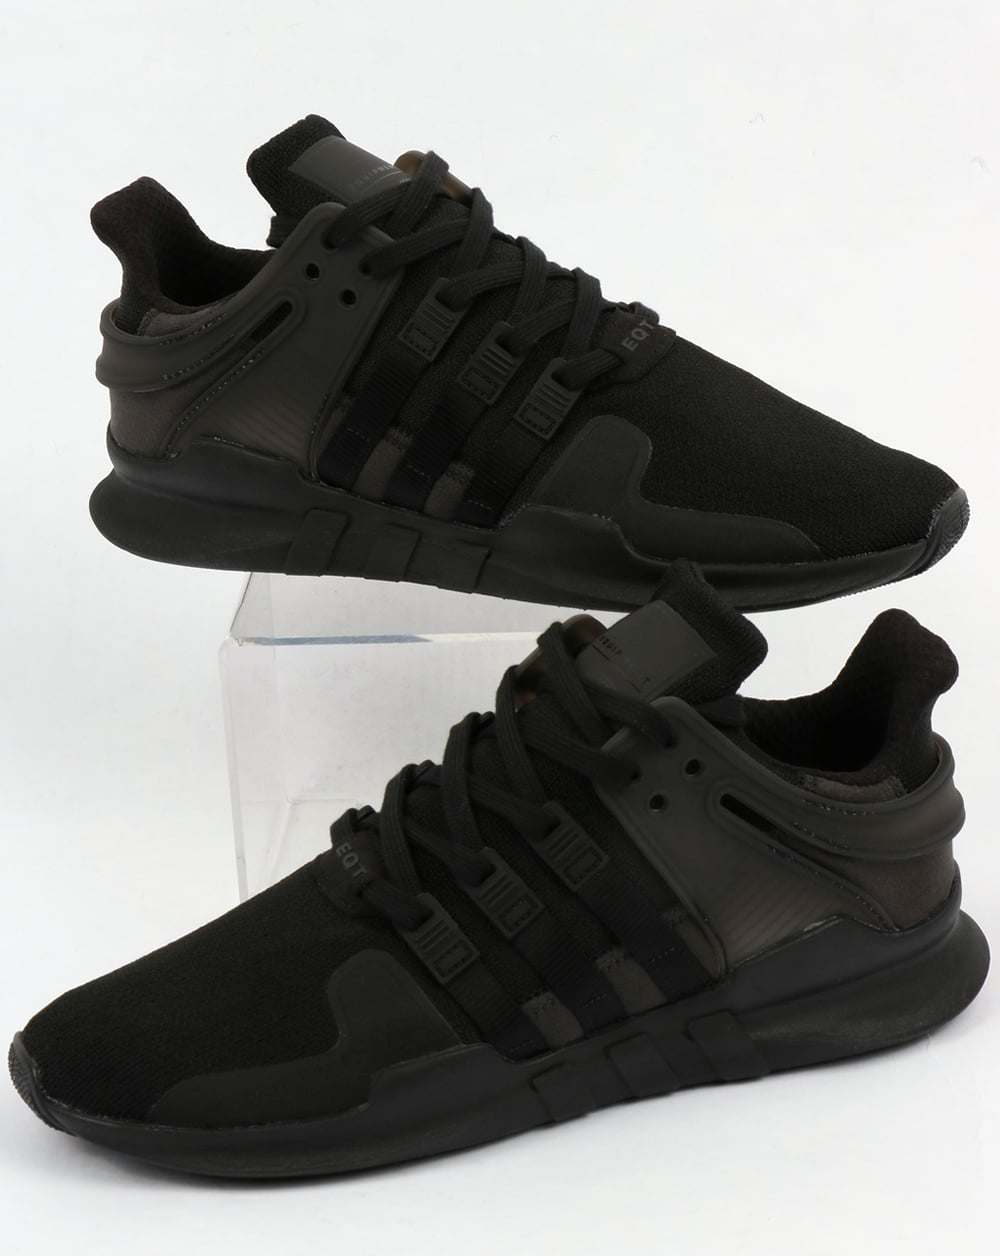 quality design d74fd 852cc Adidas EQT Support ADV Trainers Black